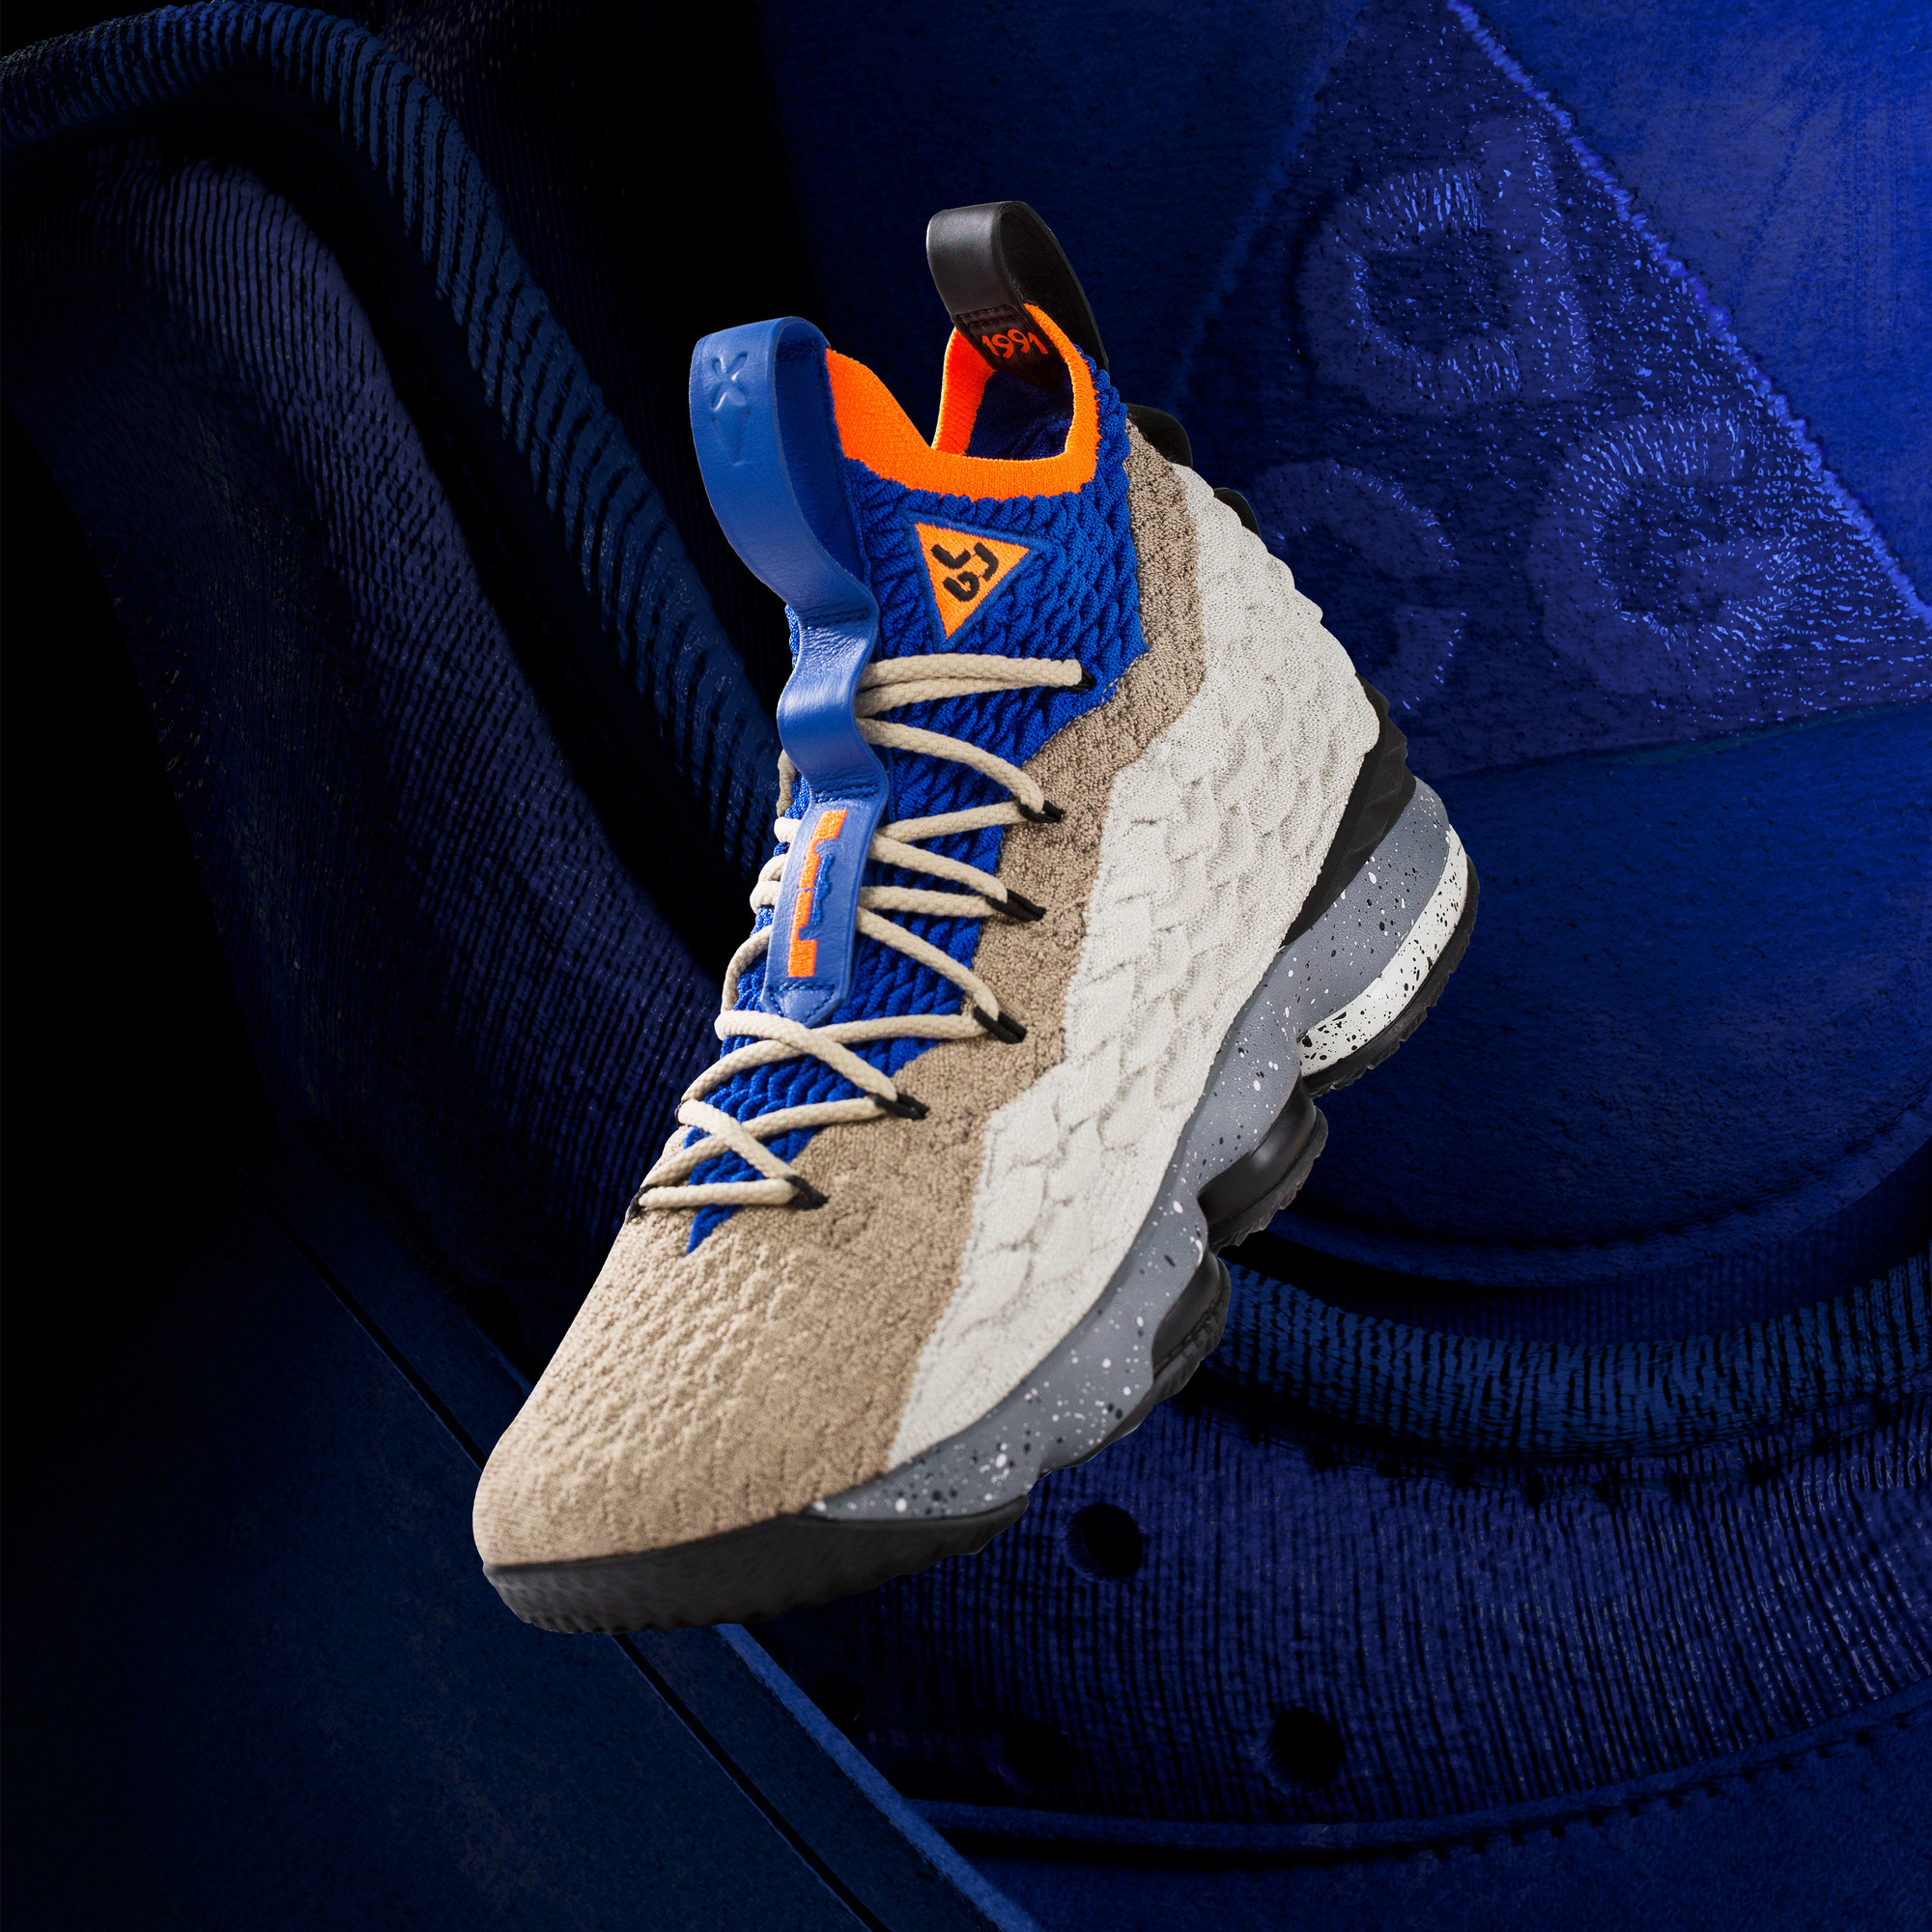 9add140b1c5 ... Lebron 15  All Five LeBron Watch LeBron 15 PEs Will Be Releasing This